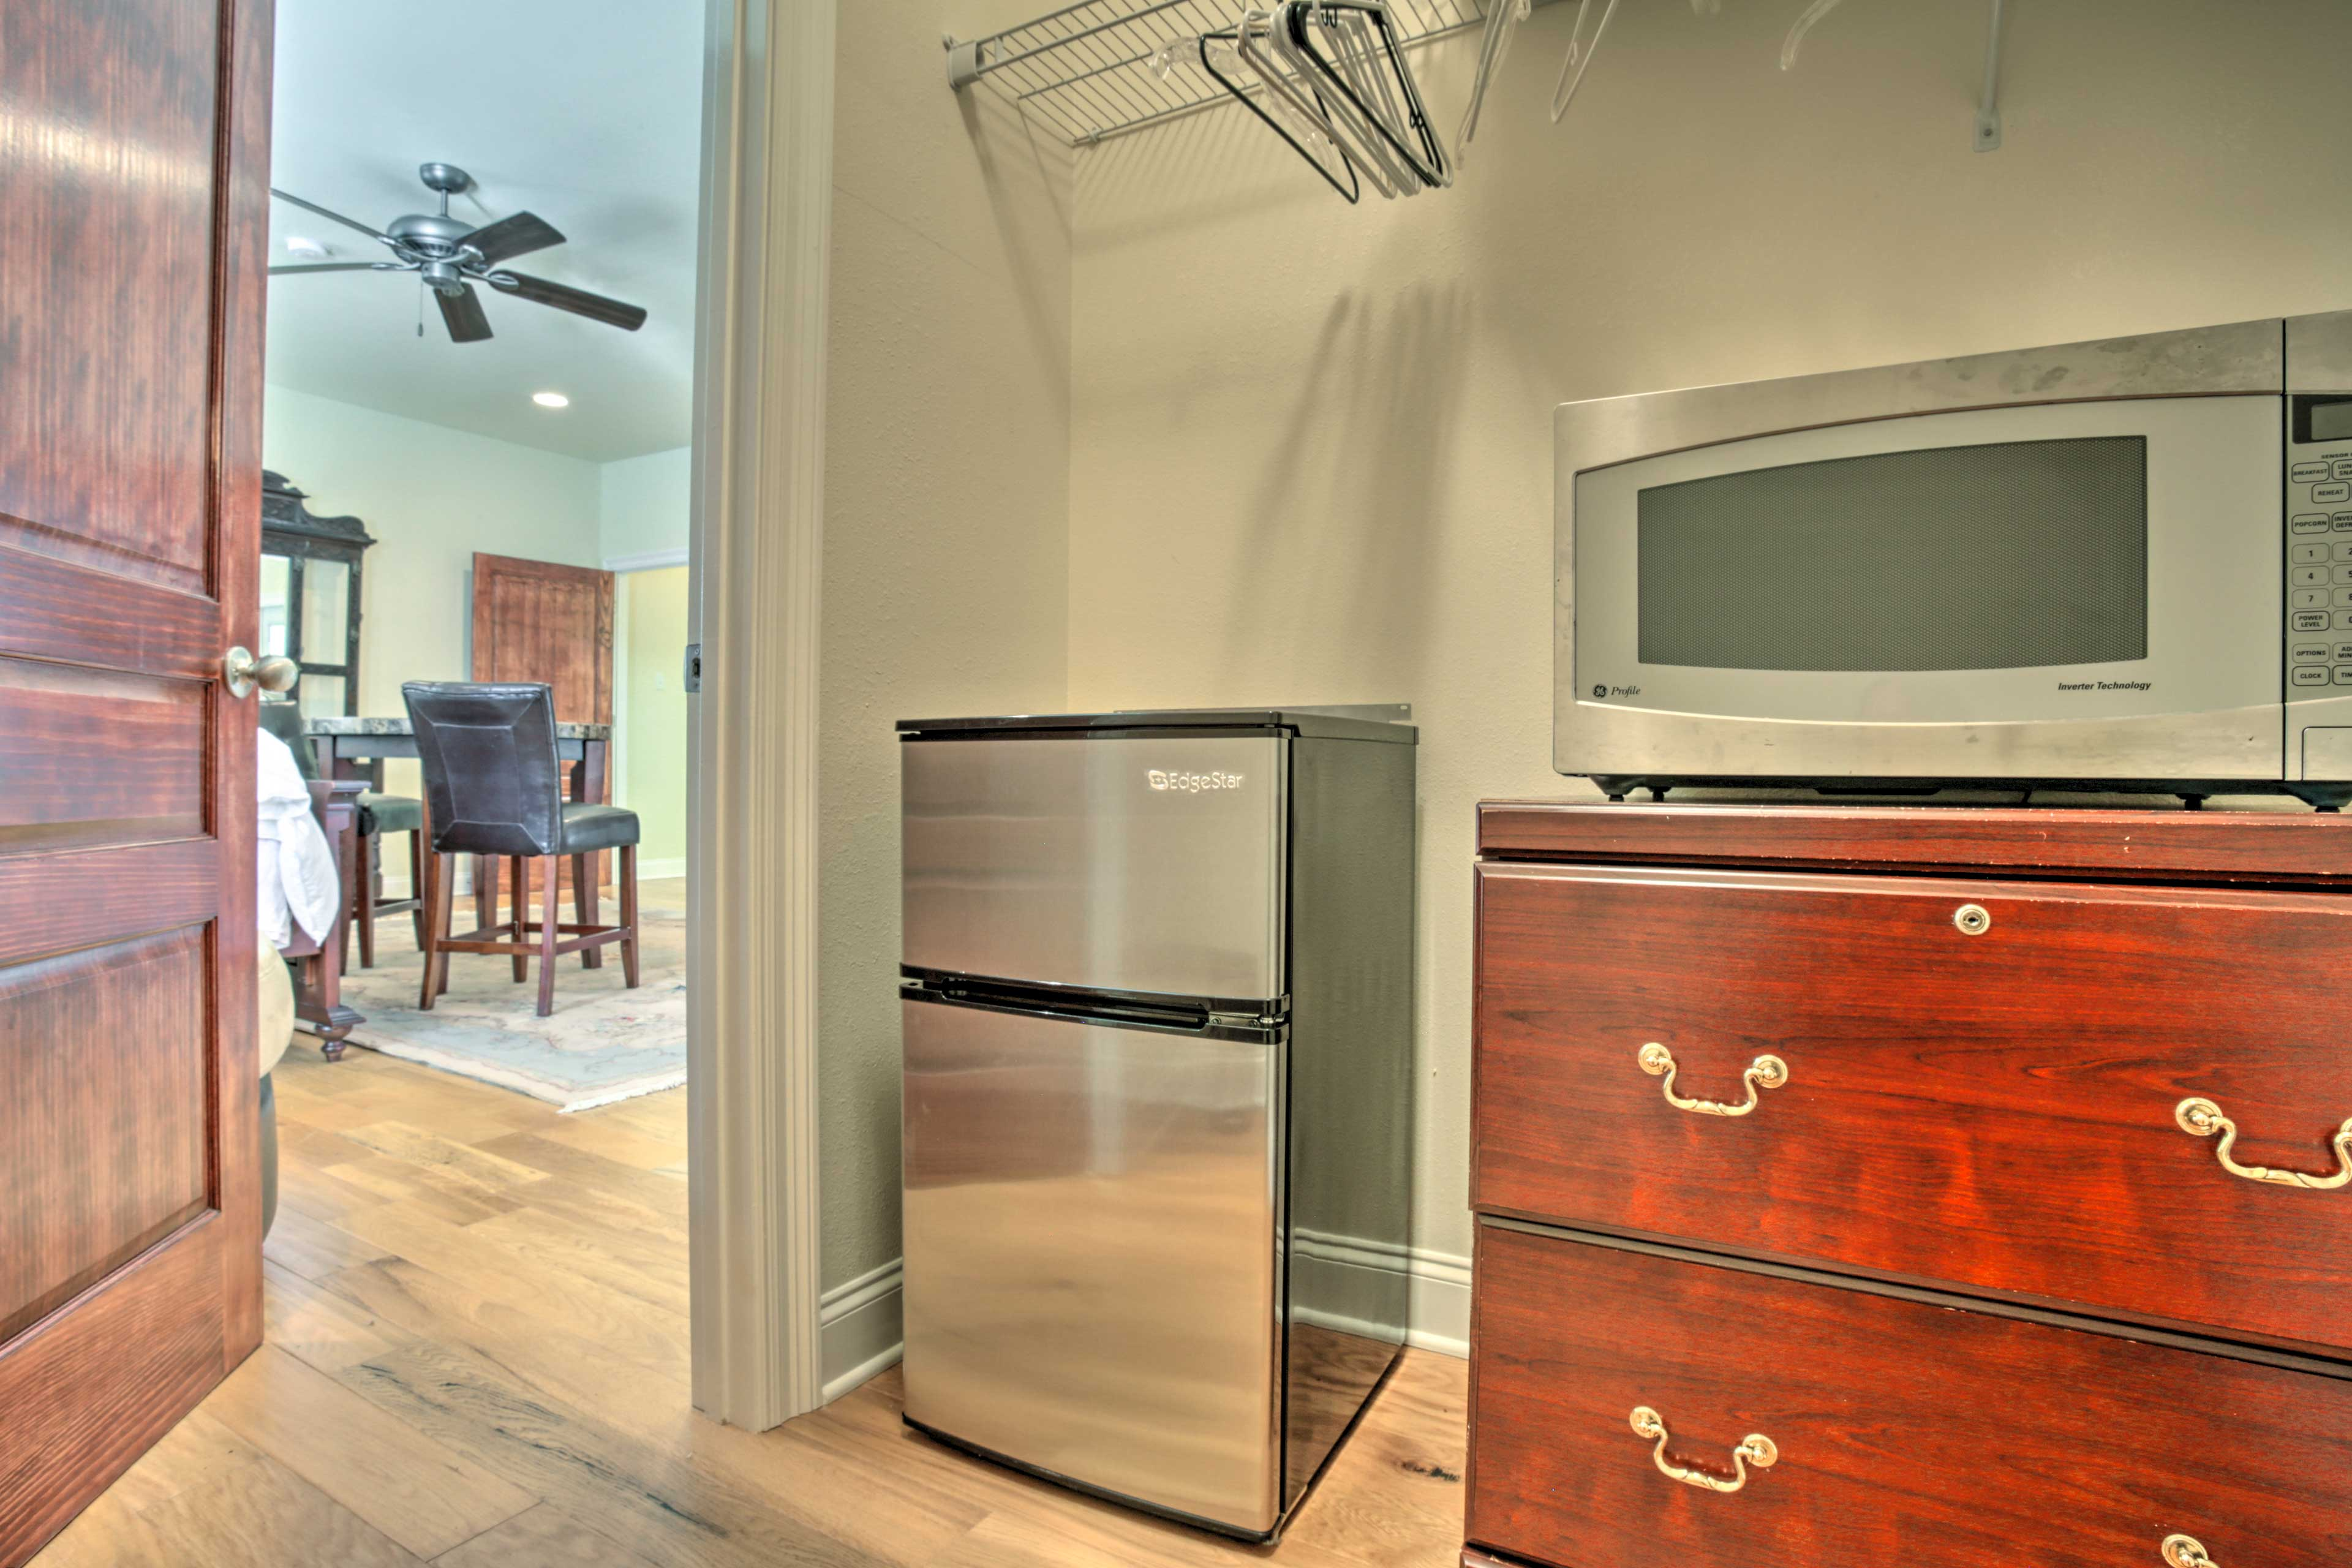 Enjoy the convenience of a mini fridge and microwave right in your bedroom!